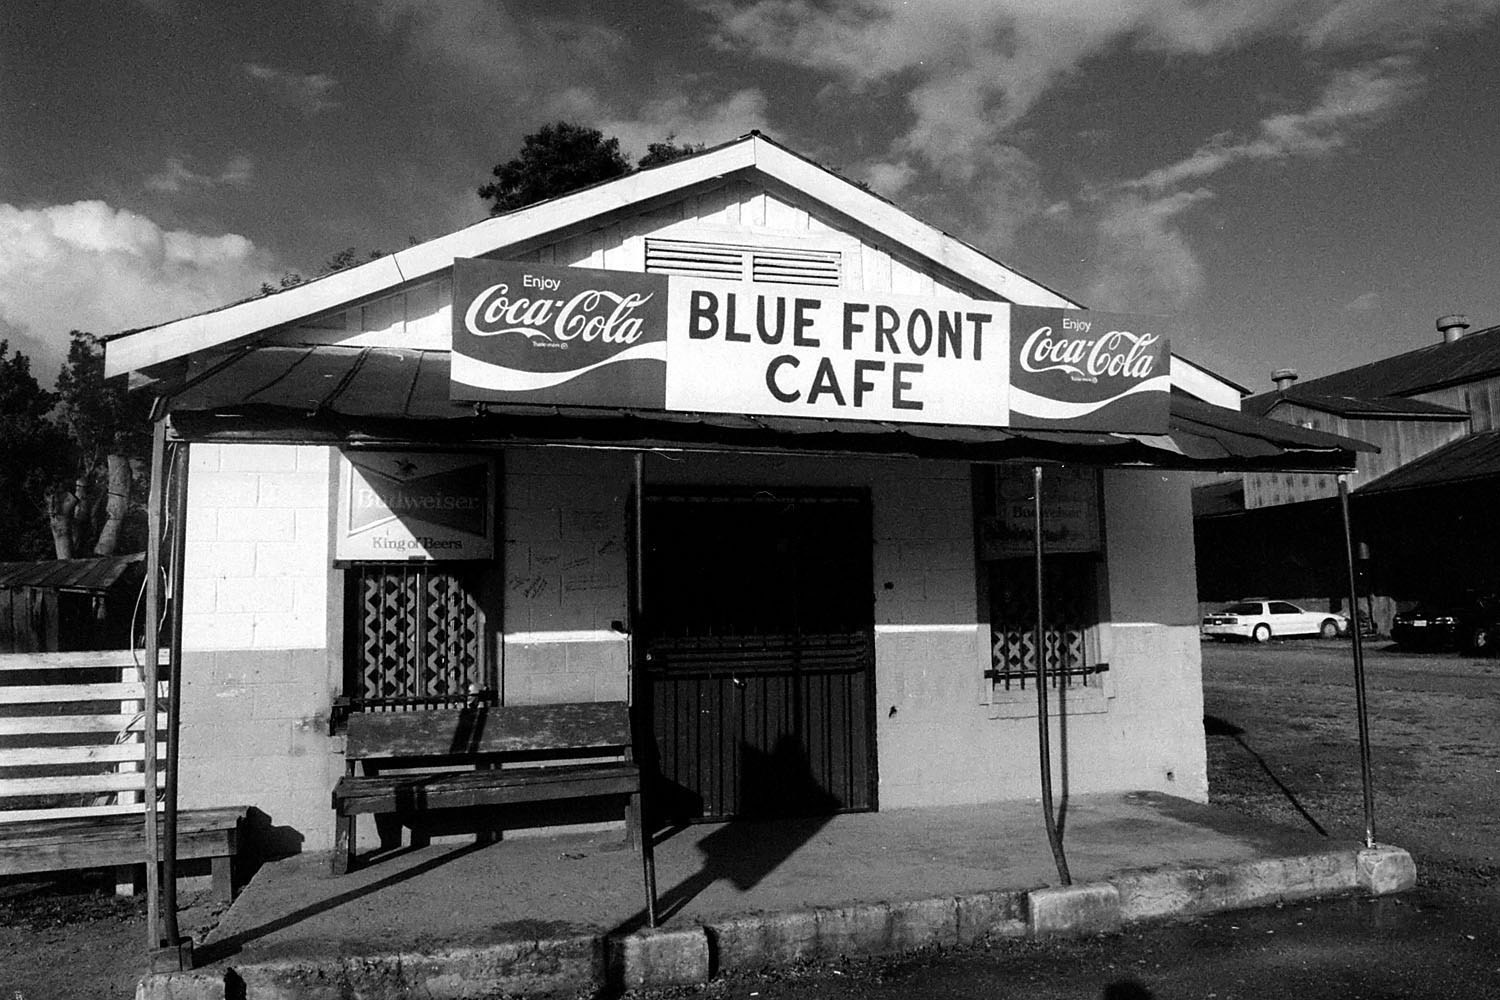 Blue Front Cafe, Bentonia, MS, 2017